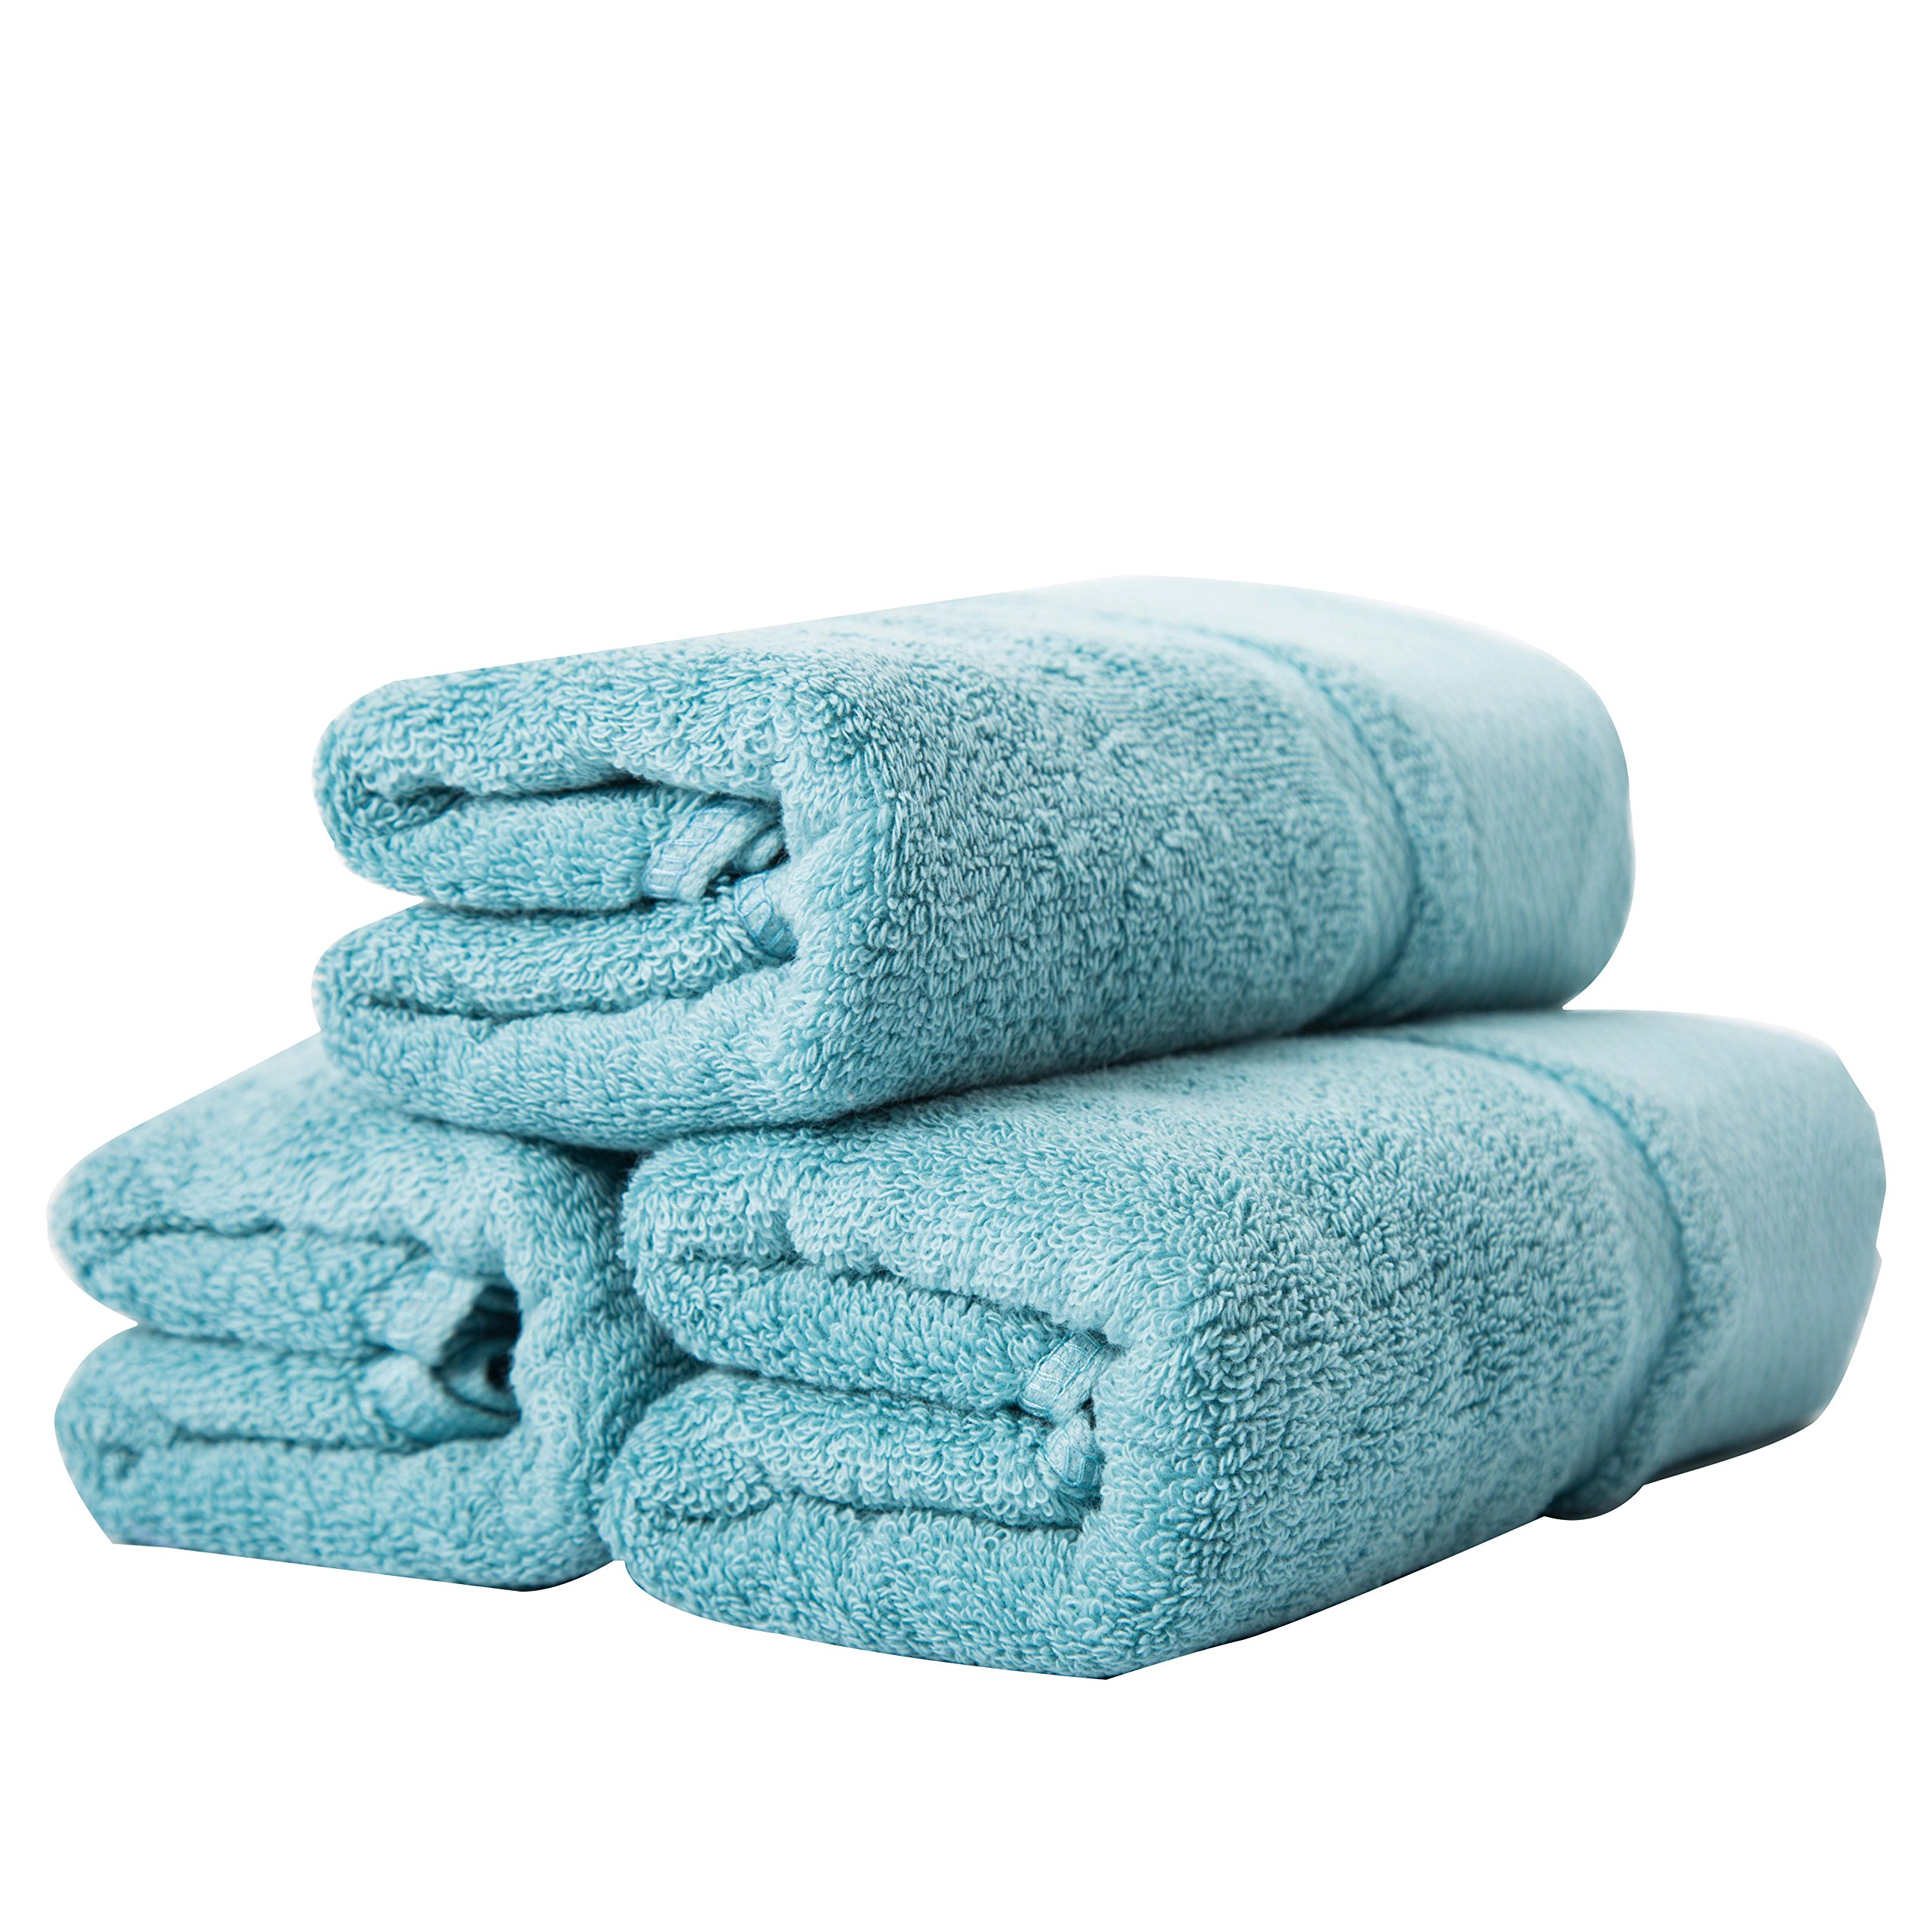 sense gnosis Hand Towels Ultra Absorbent Quick Dry 100 Percent Terry Cotton Luxury Towel Set for Everyday Use, Home, Gym, Pool, Camping (3 Pack Turquoise,13'' X 29'' )